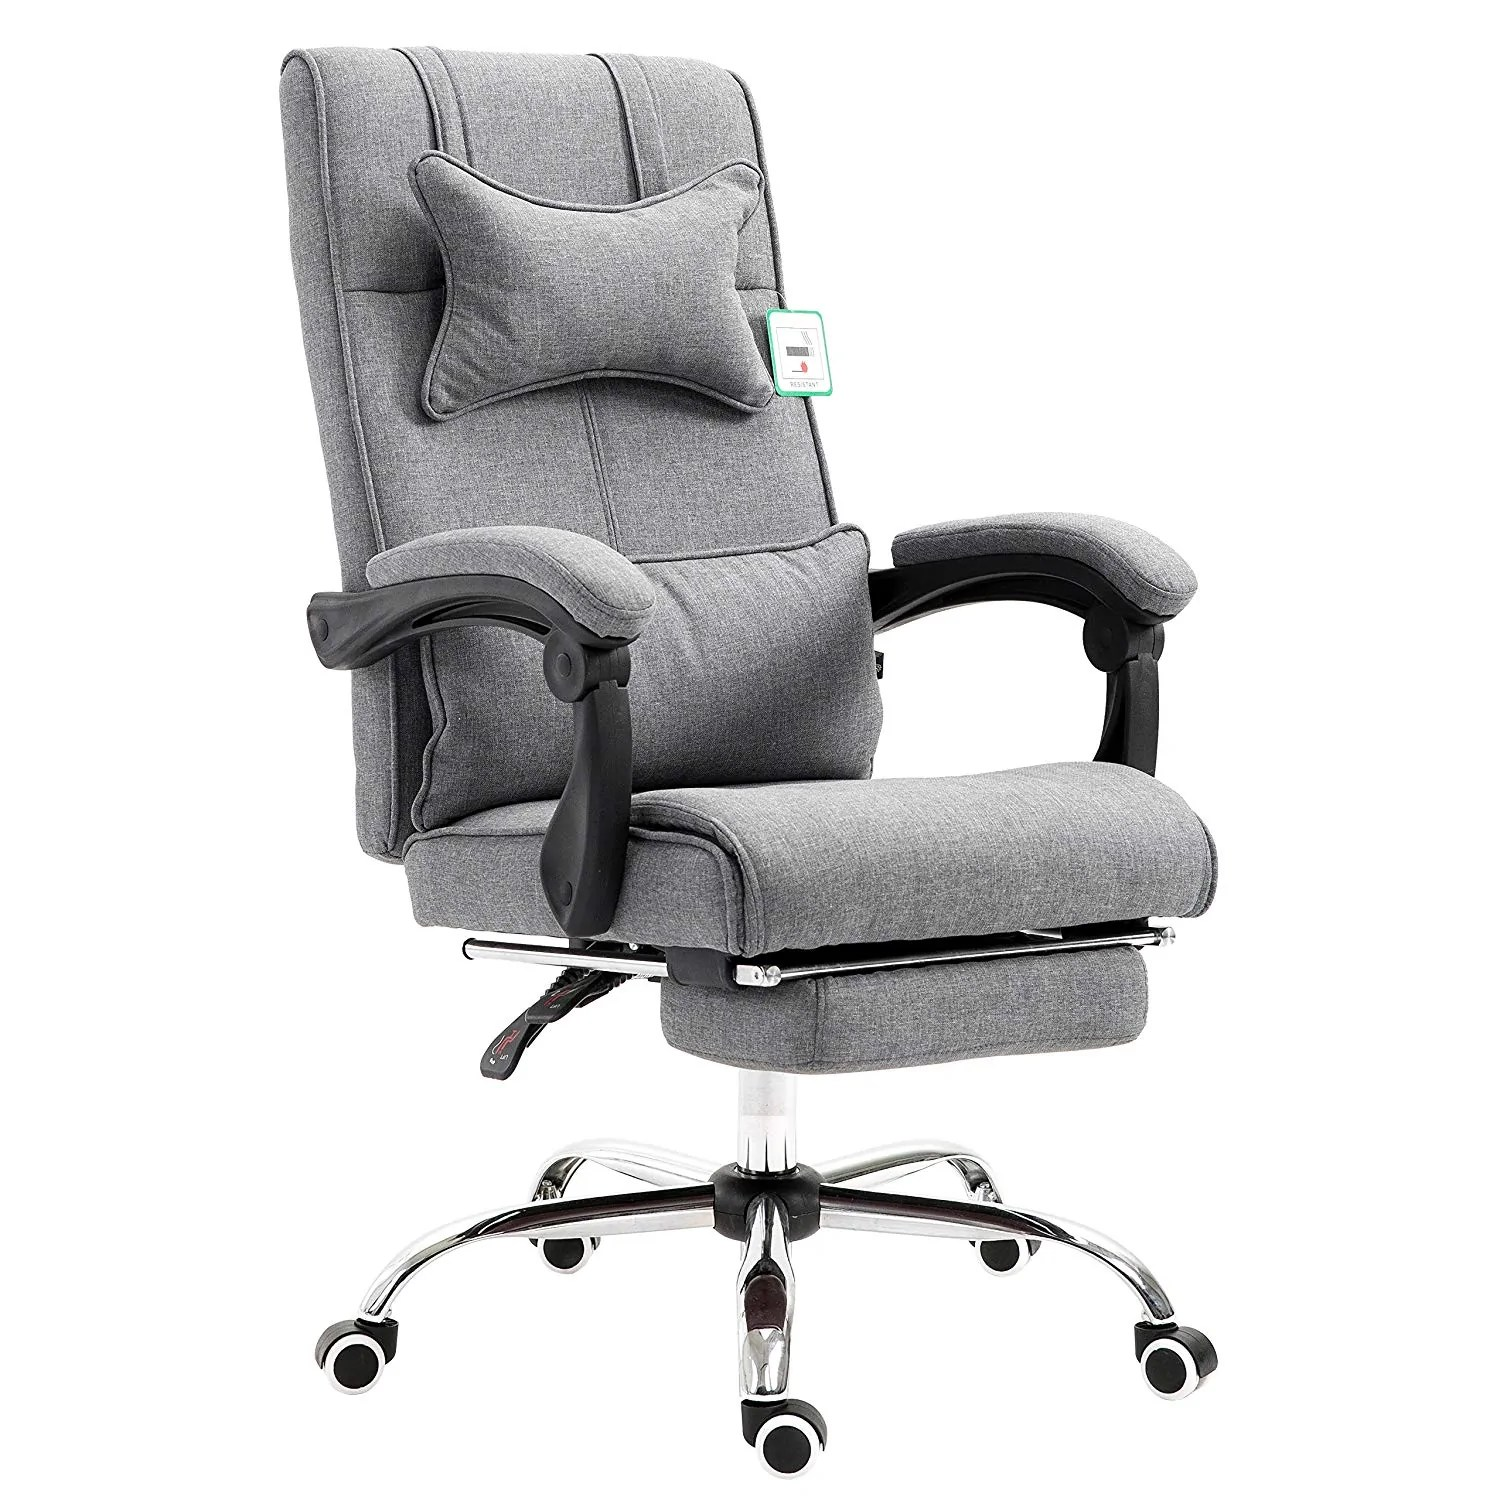 Grey Desk Chair Premium Executive Reclining Desk Chair With Footrest Headrest And Lumbar Cushion Support Grey Fabric